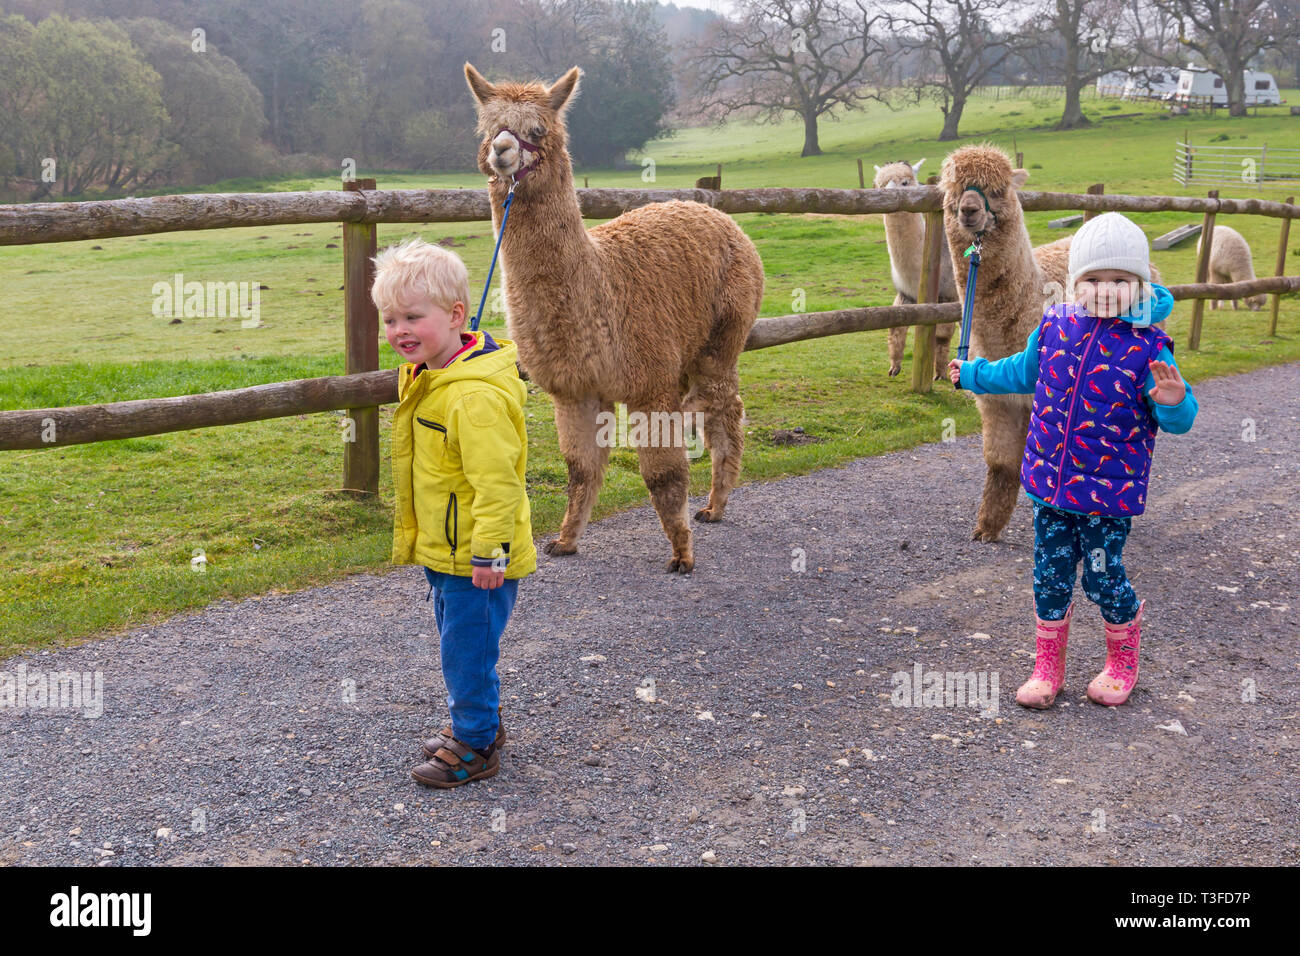 Wareham, Dorset, UK. 9th Apr 2019. Alpaca walks at Longthorns Farm in Wareham. Elliot and Ethan walk Harry (the ginger one) and William (permission received). Credit: Carolyn Jenkins/Alamy Live News - Stock Image